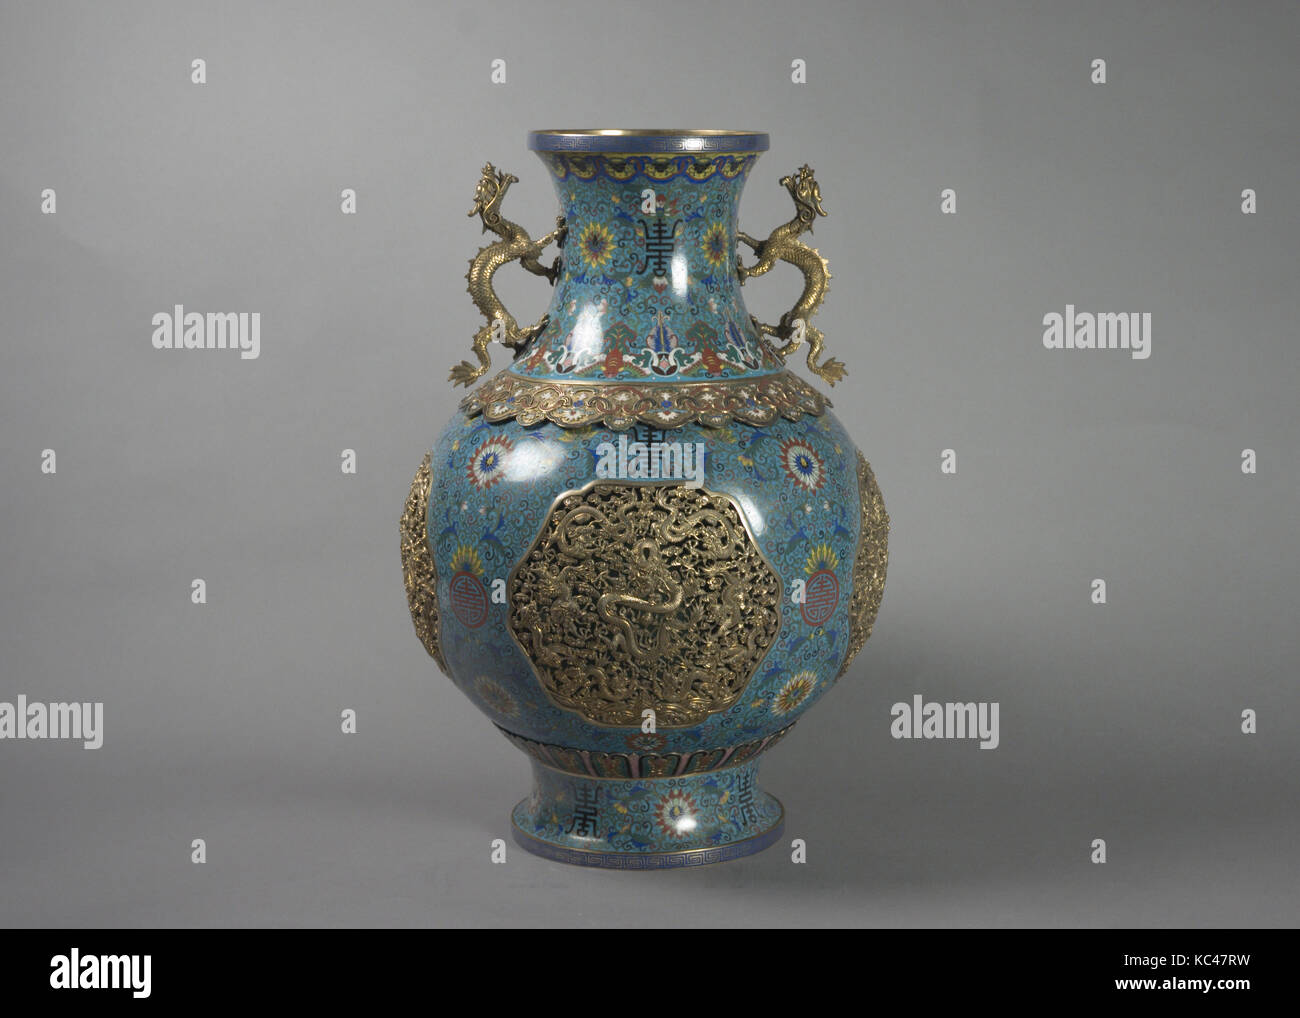 Art chinese dynasty vase stock photos art chinese dynasty vase one of a pair of vases with dragon handles 19th century stock image reviewsmspy